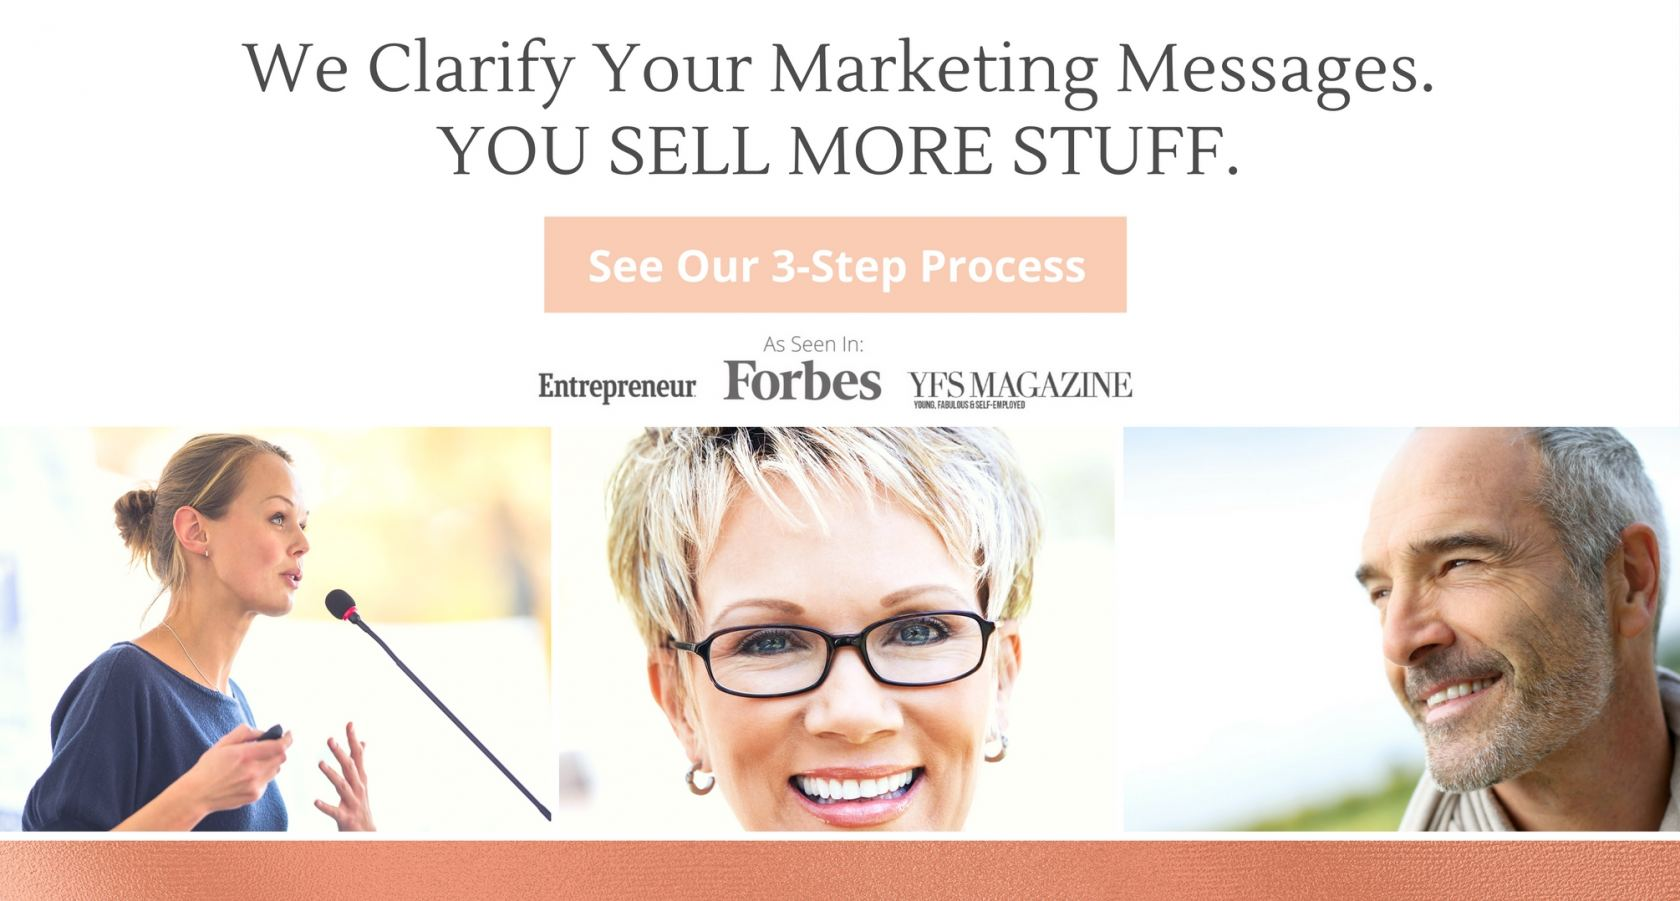 We clarify your marketing messages you sell more stuff // san diego marketing agency // sizzleforce marketing